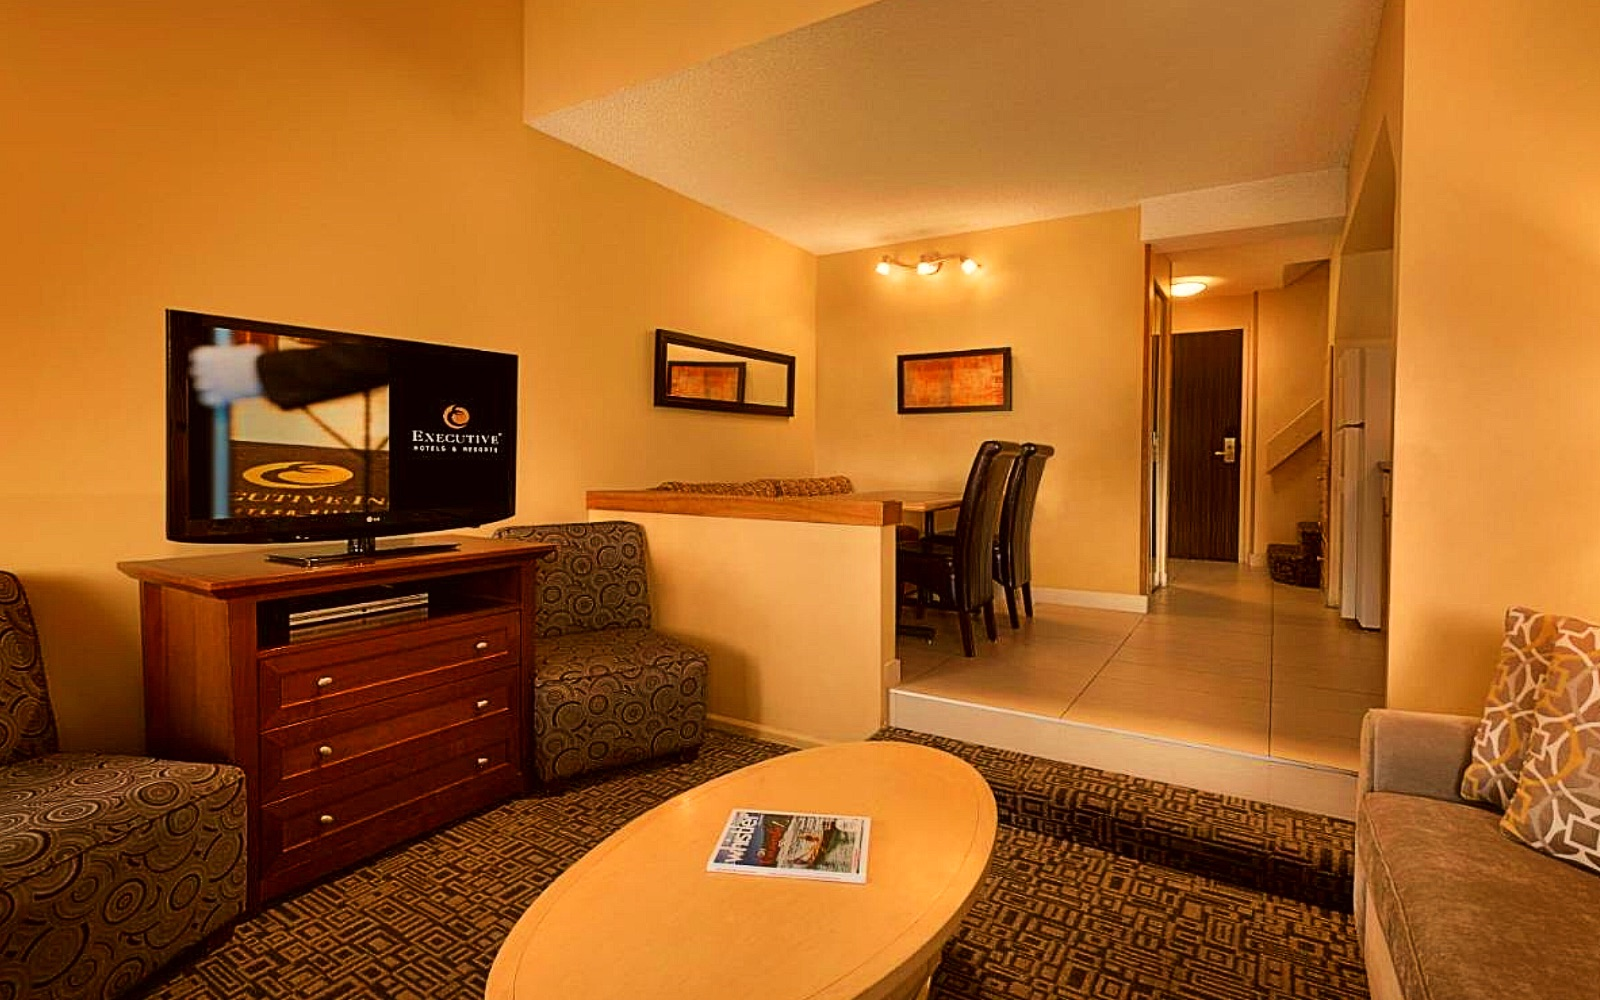 A suite at the Mountainside Hotel by Executive, Whistler Village